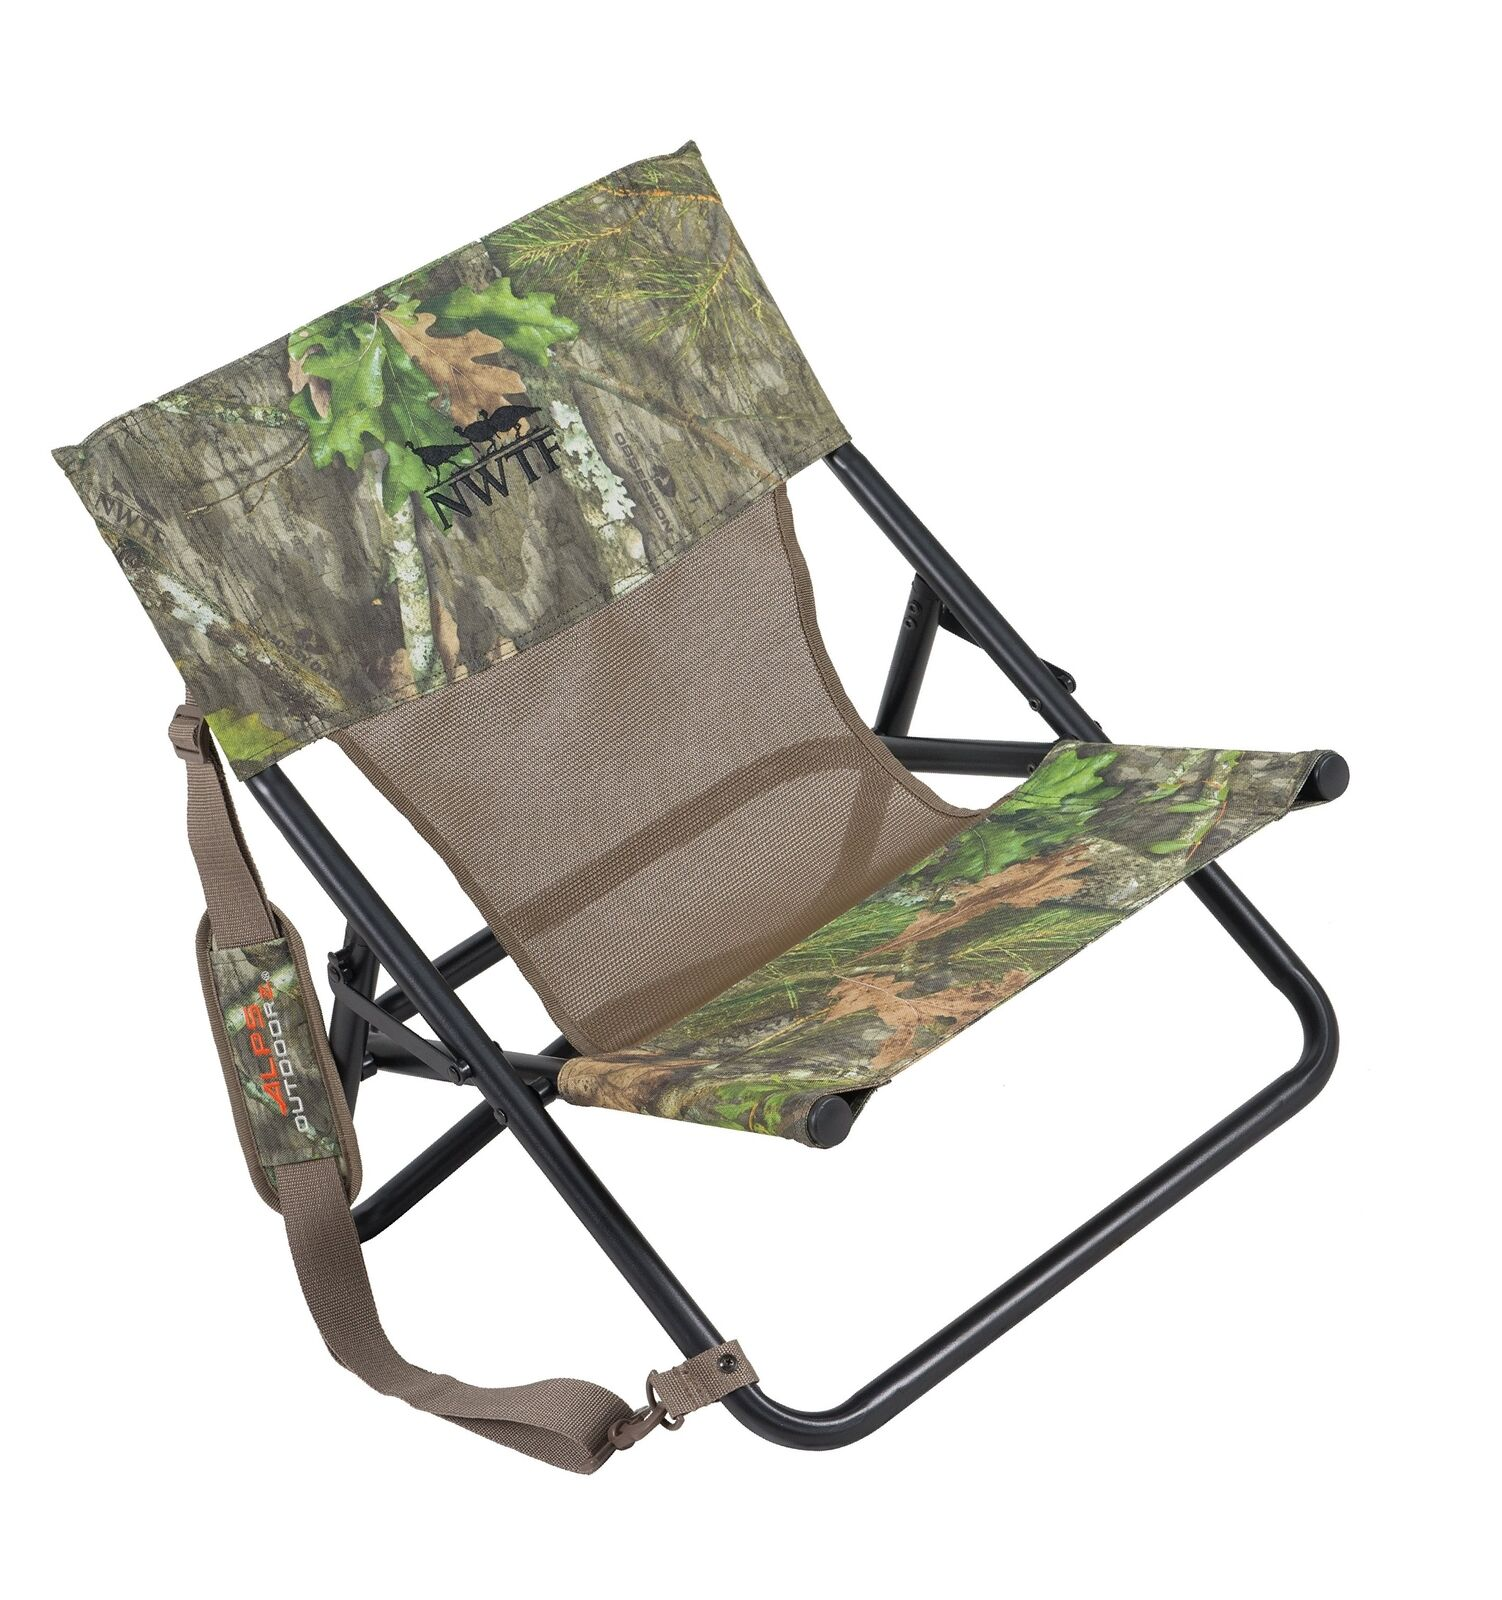 ALPS OutdoorZ NWTF Turkey Chair More Comfort